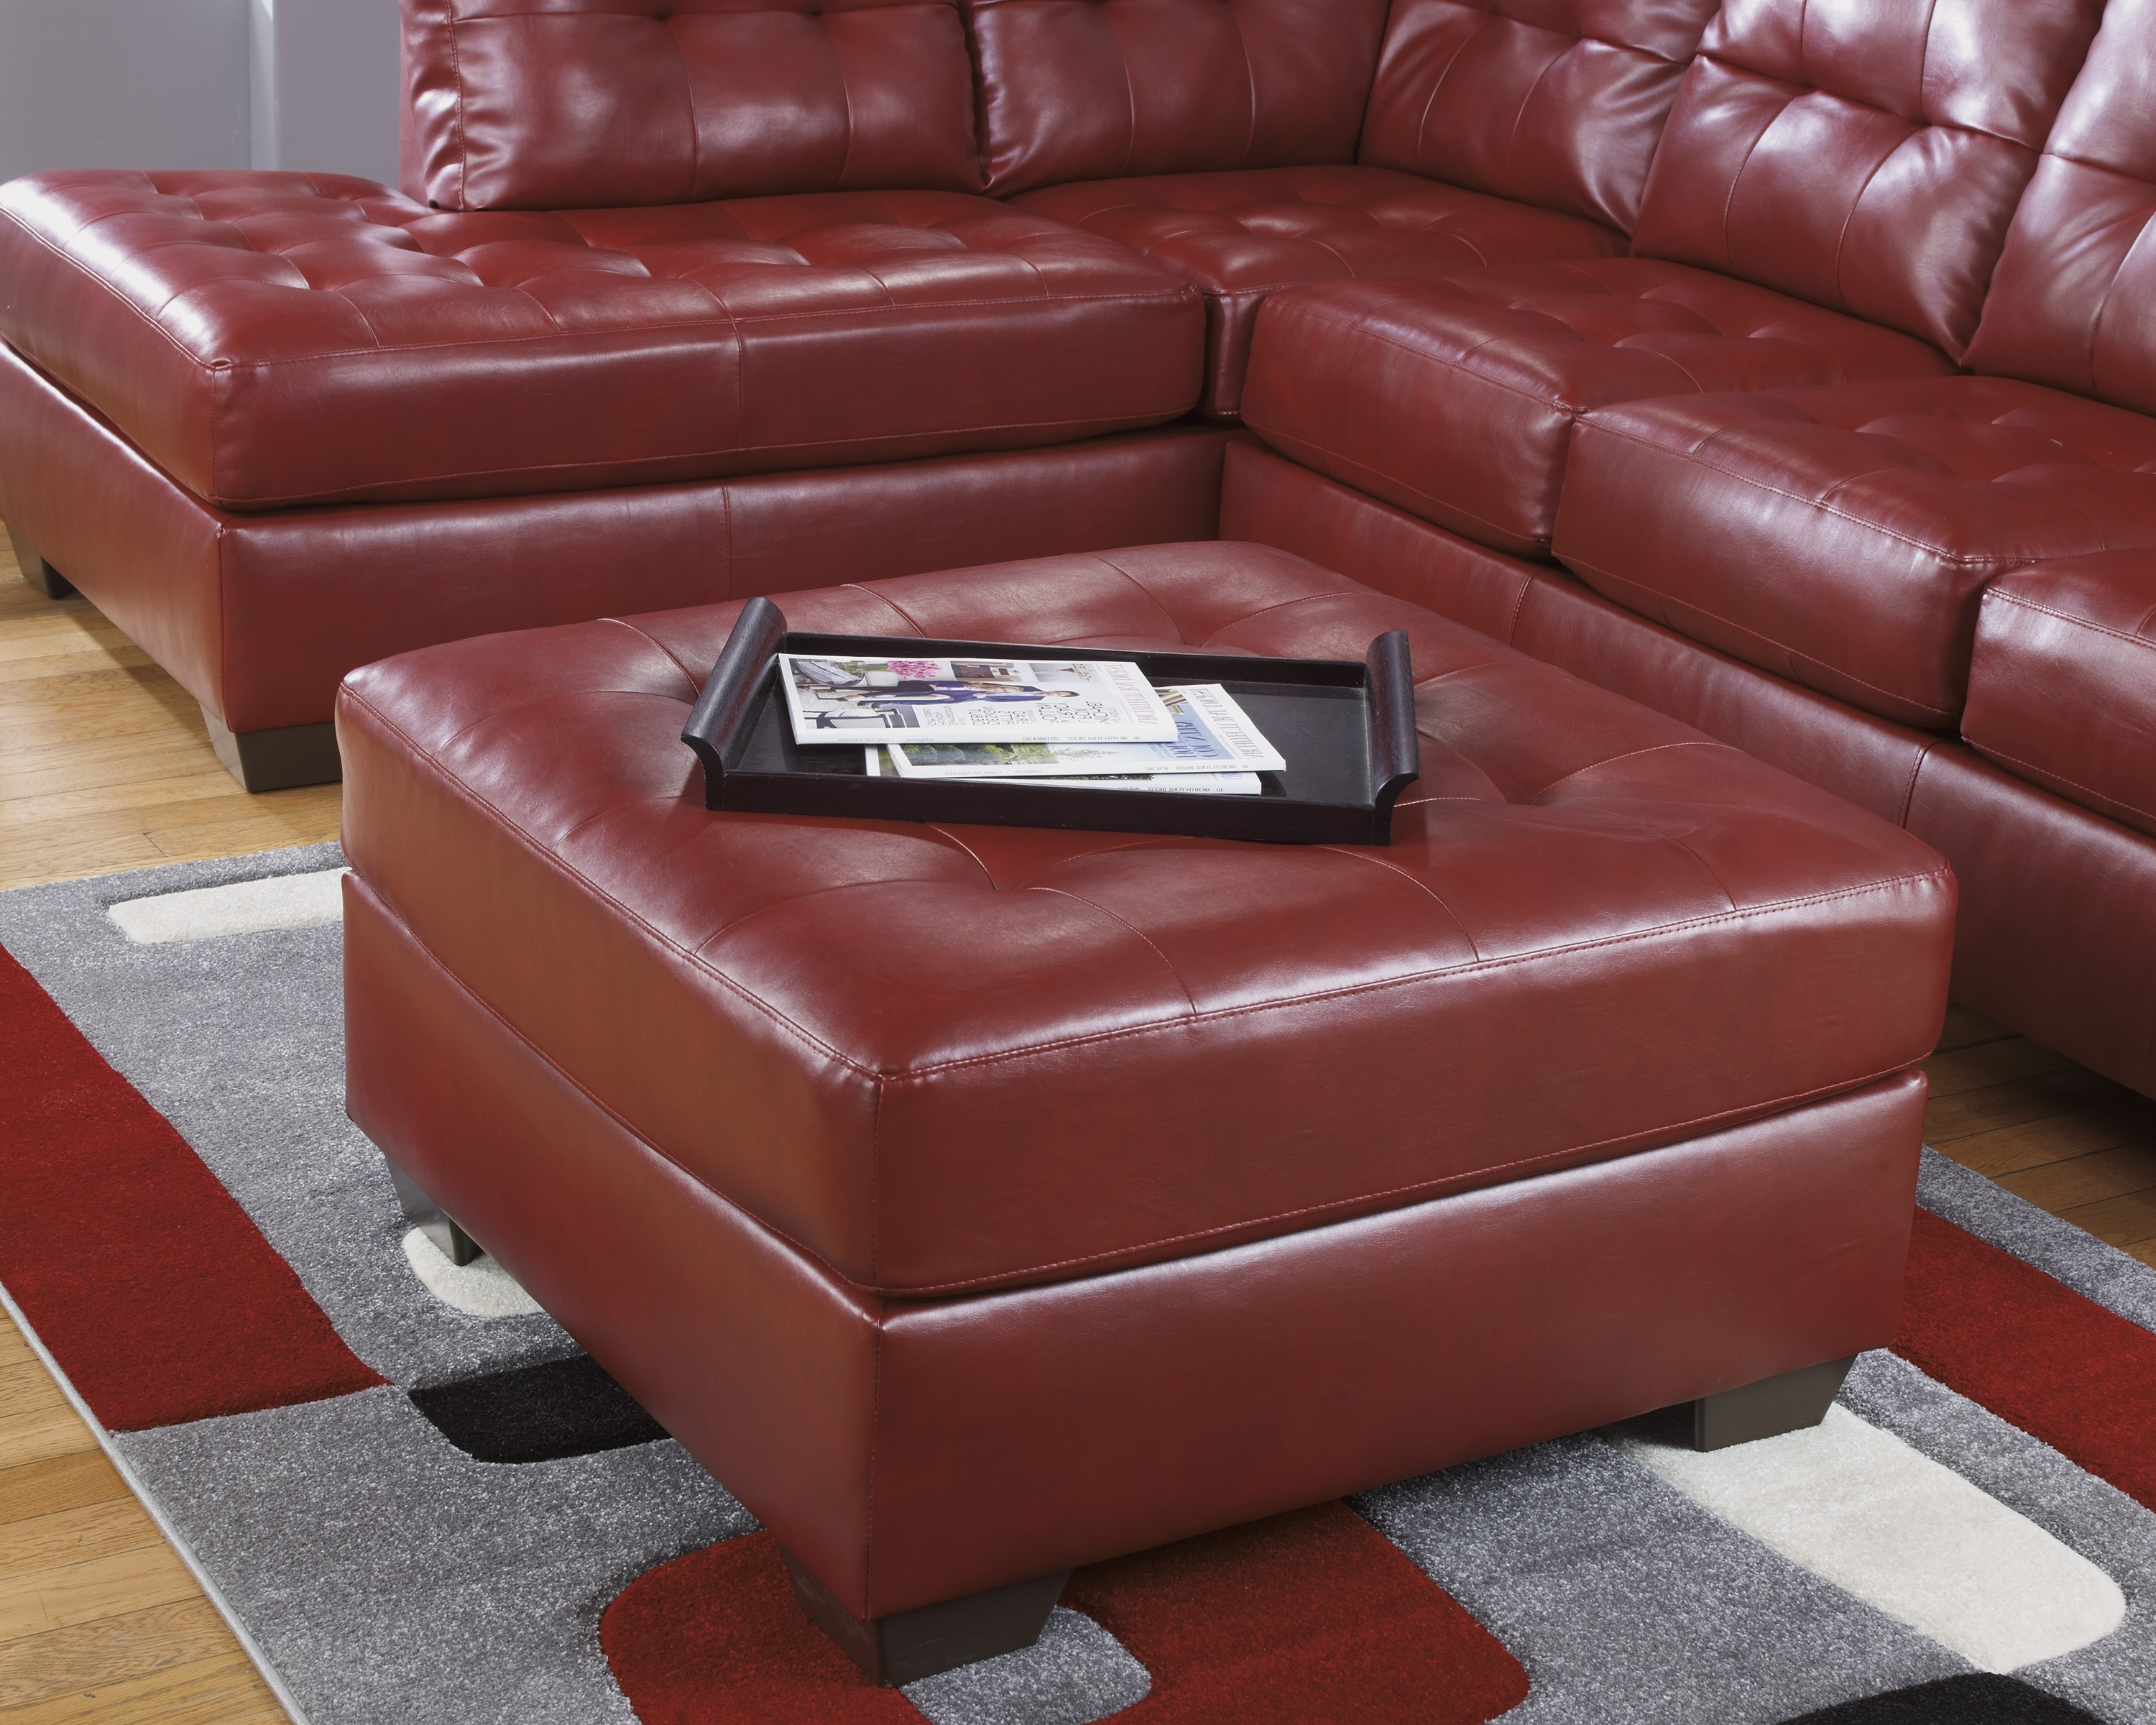 Red Leather Sectional Sofas With Ottoman Pertaining To Most Recently Released Ashley Furniture Leather Sectionals, Ashley Furniture Sofa (View 10 of 15)